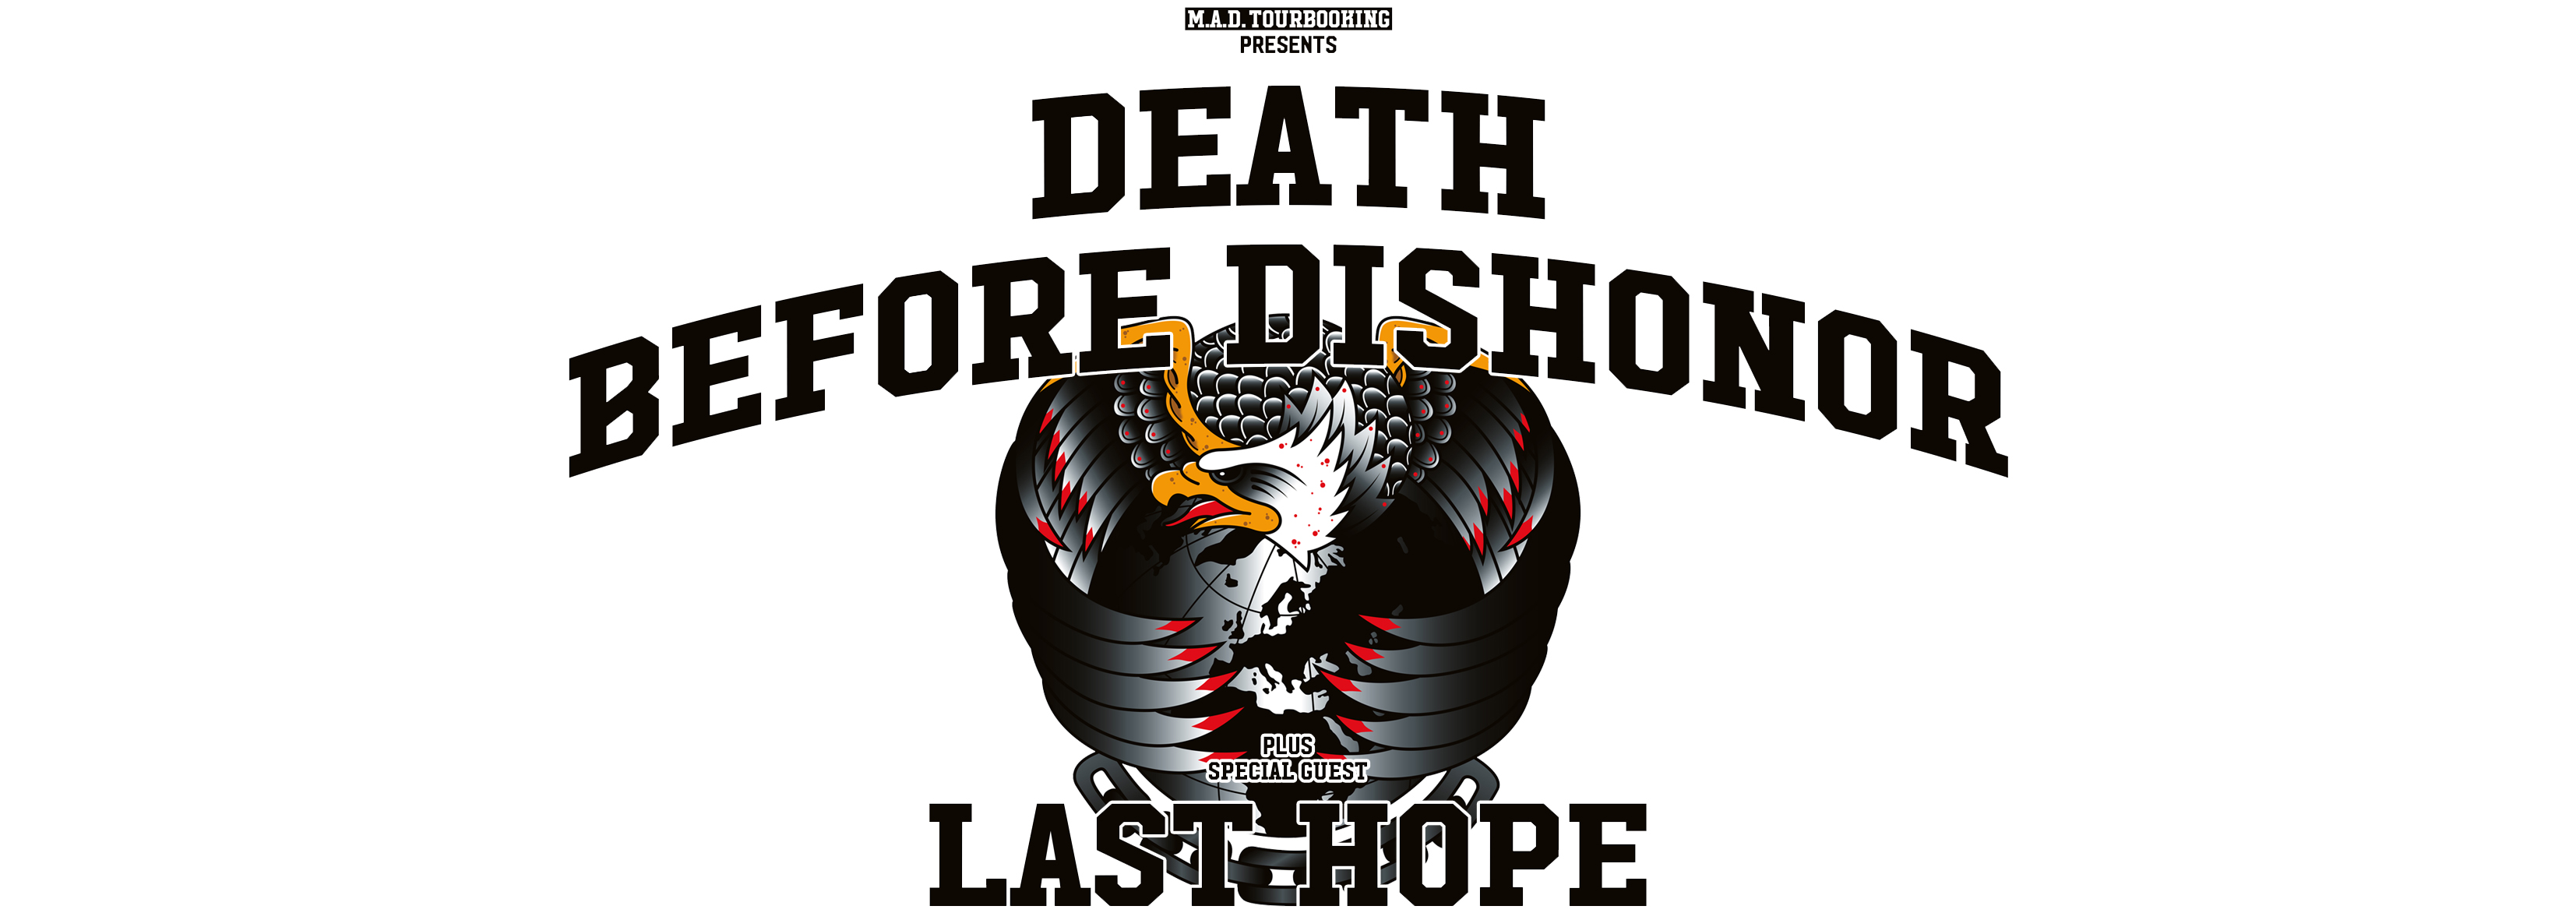 DEATH BEFORE DISHONOR - NOVEMBER TOUR 2017